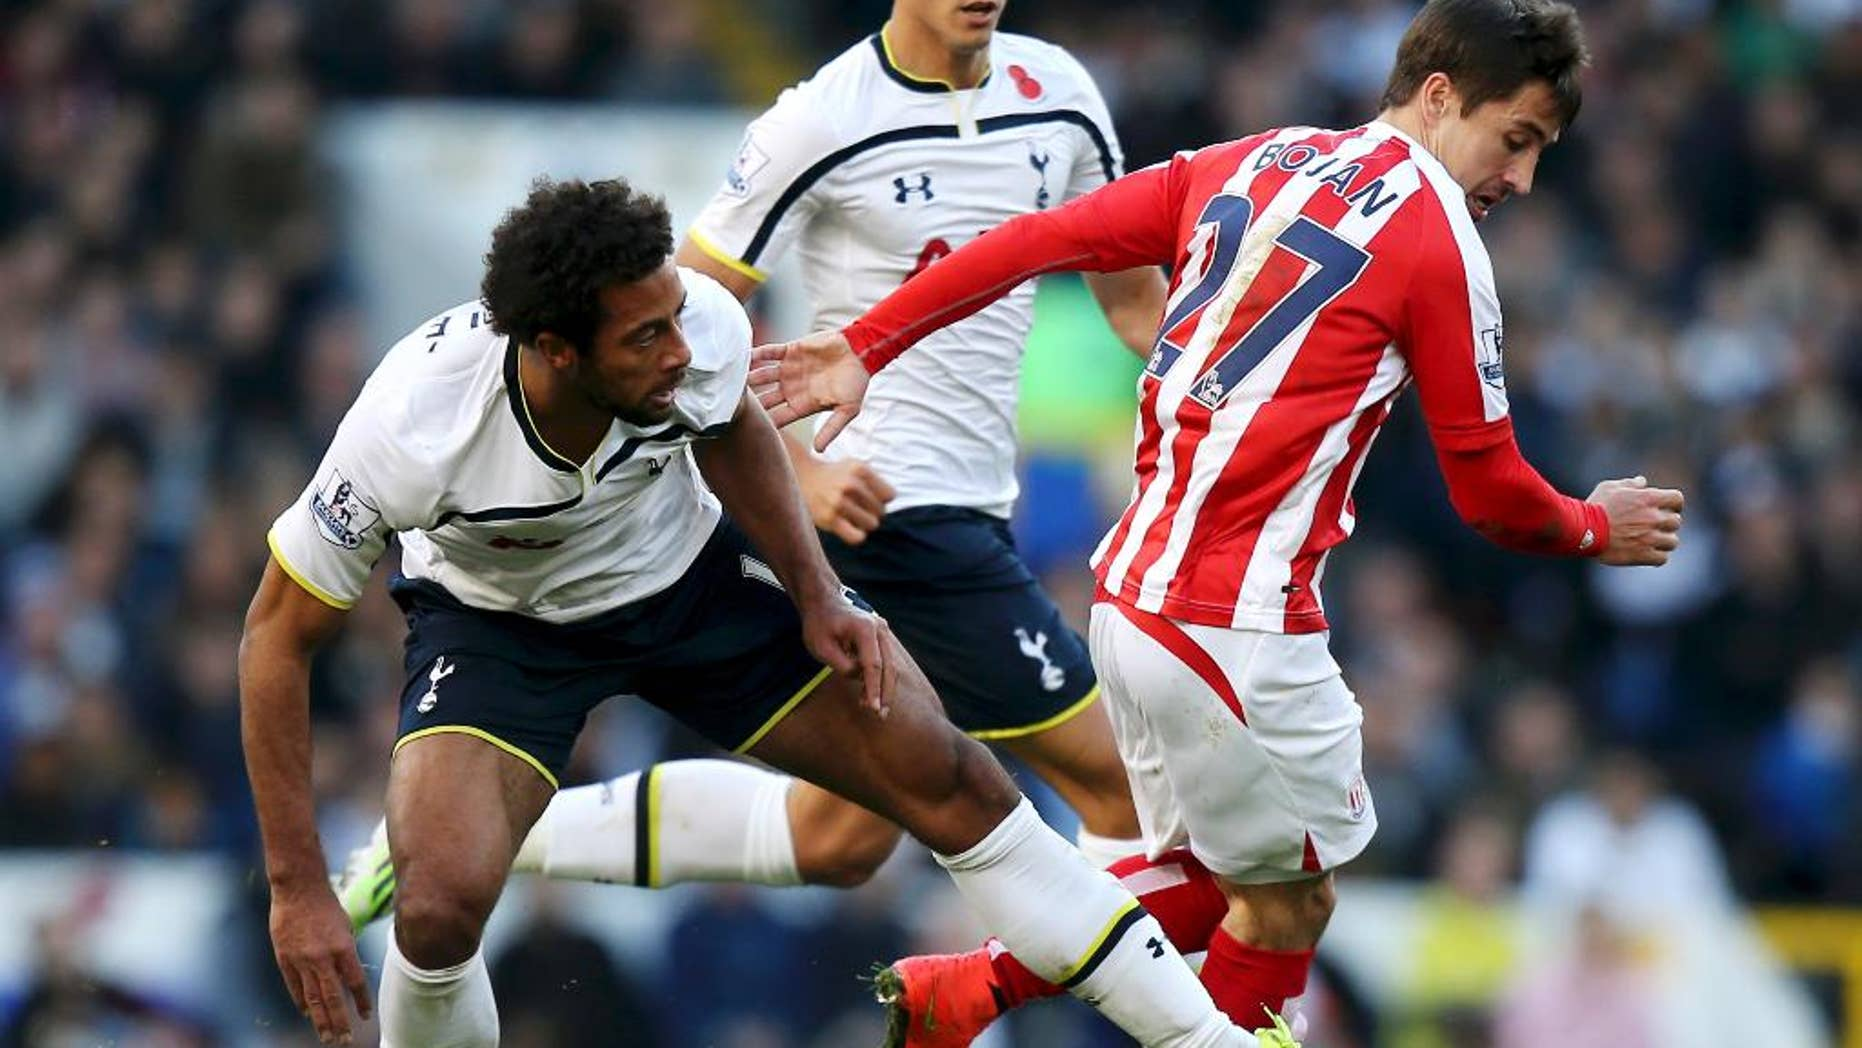 Stoke City's Bojan Krkic, right, is tackled by Tottenham Hotspur's Mousa Dembele, during their  English Premier League soccer match at White Hart Lane in London, Sunday Nov. 9, 2014. (AP Photo / John Walton, PA) UNITED KINGDOM OUT - NO SALES - NO ARCHIVES